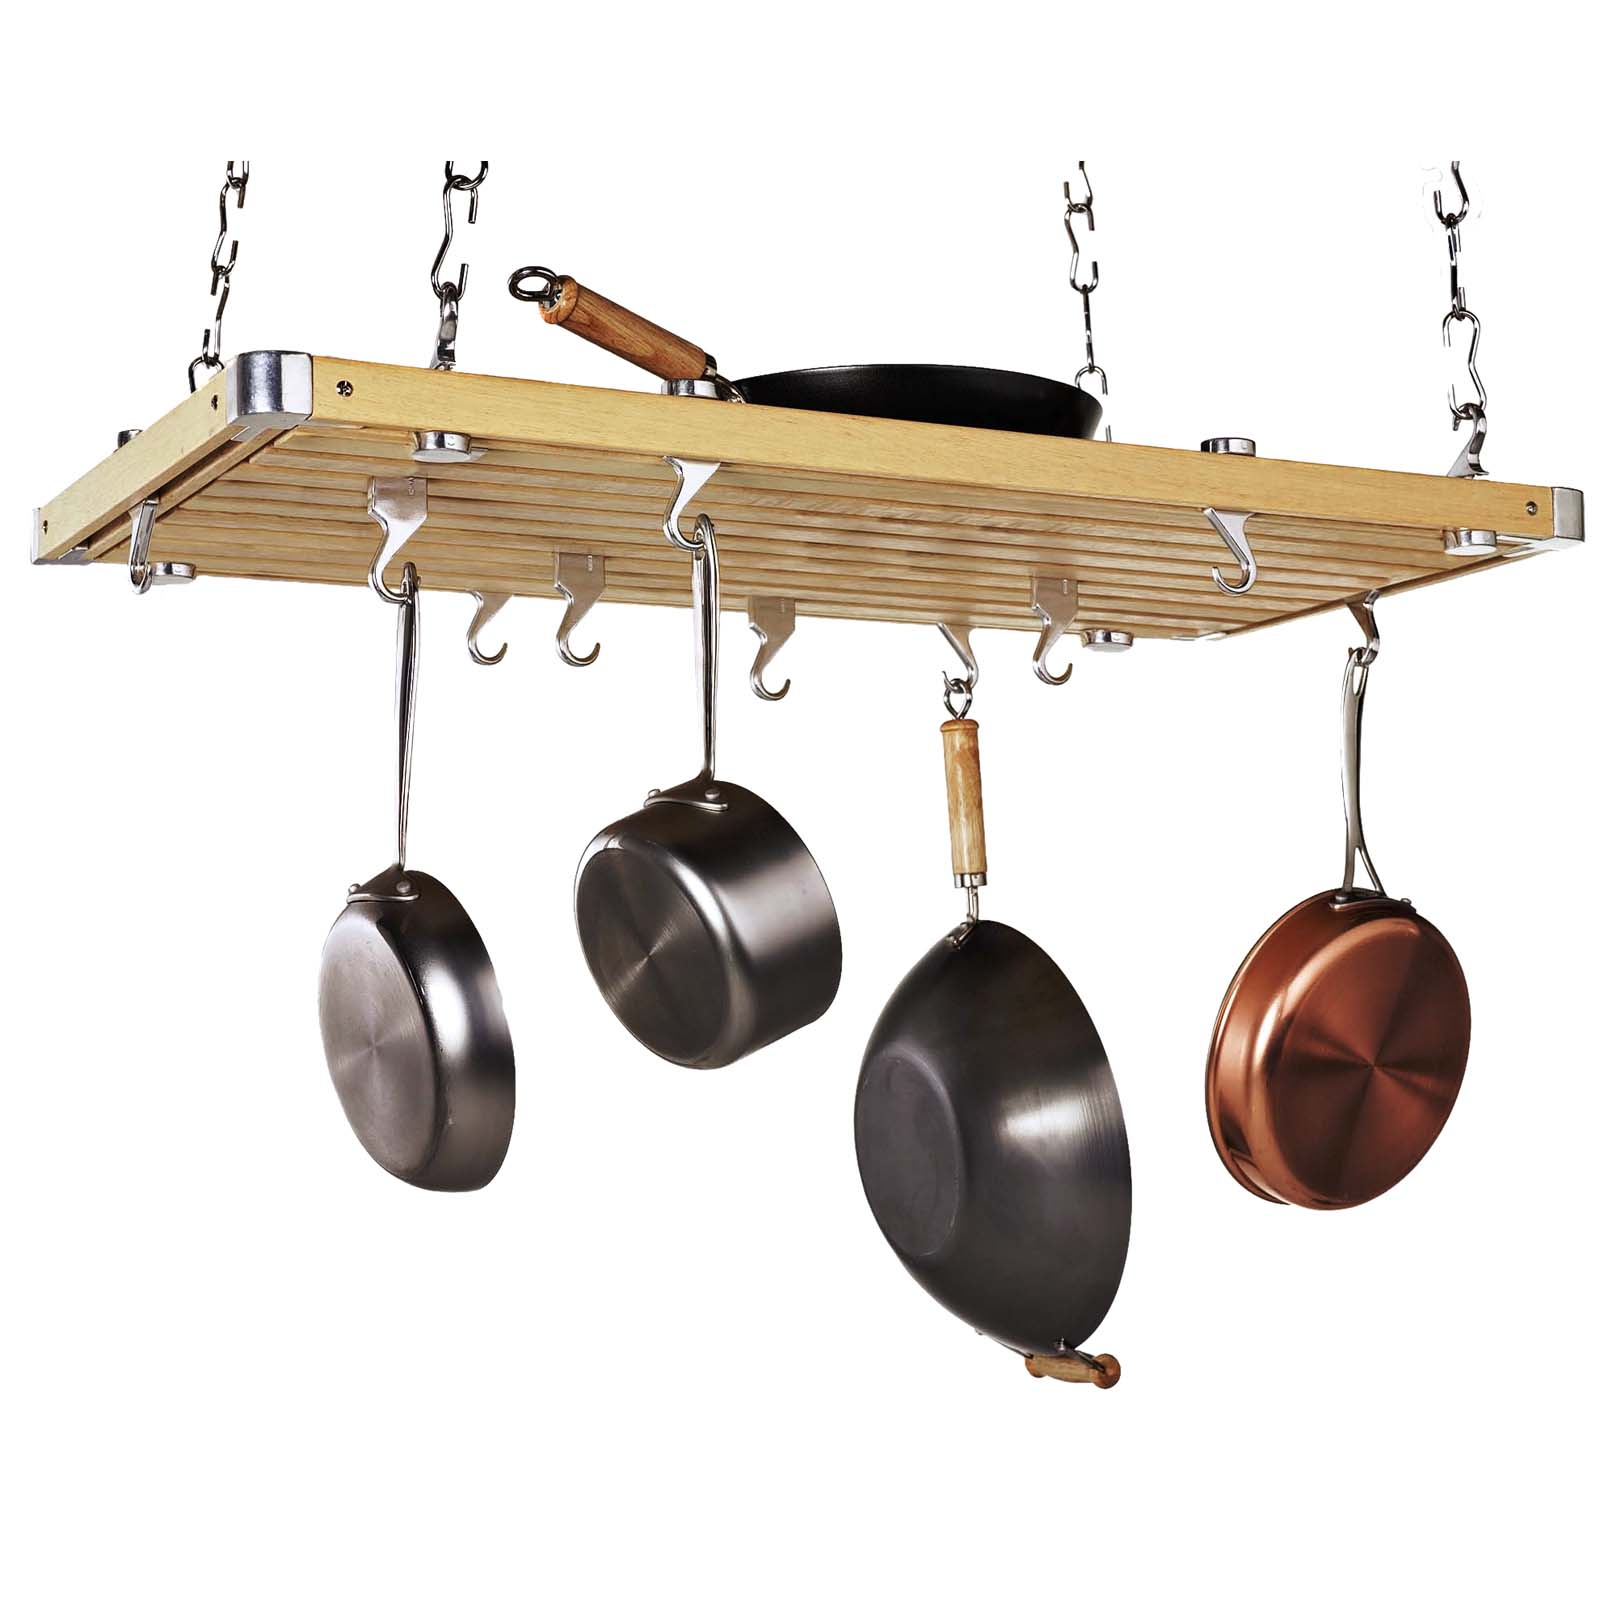 Wood rectangular ceiling kitchen pot rack pot racks at for Pot racks for kitchen